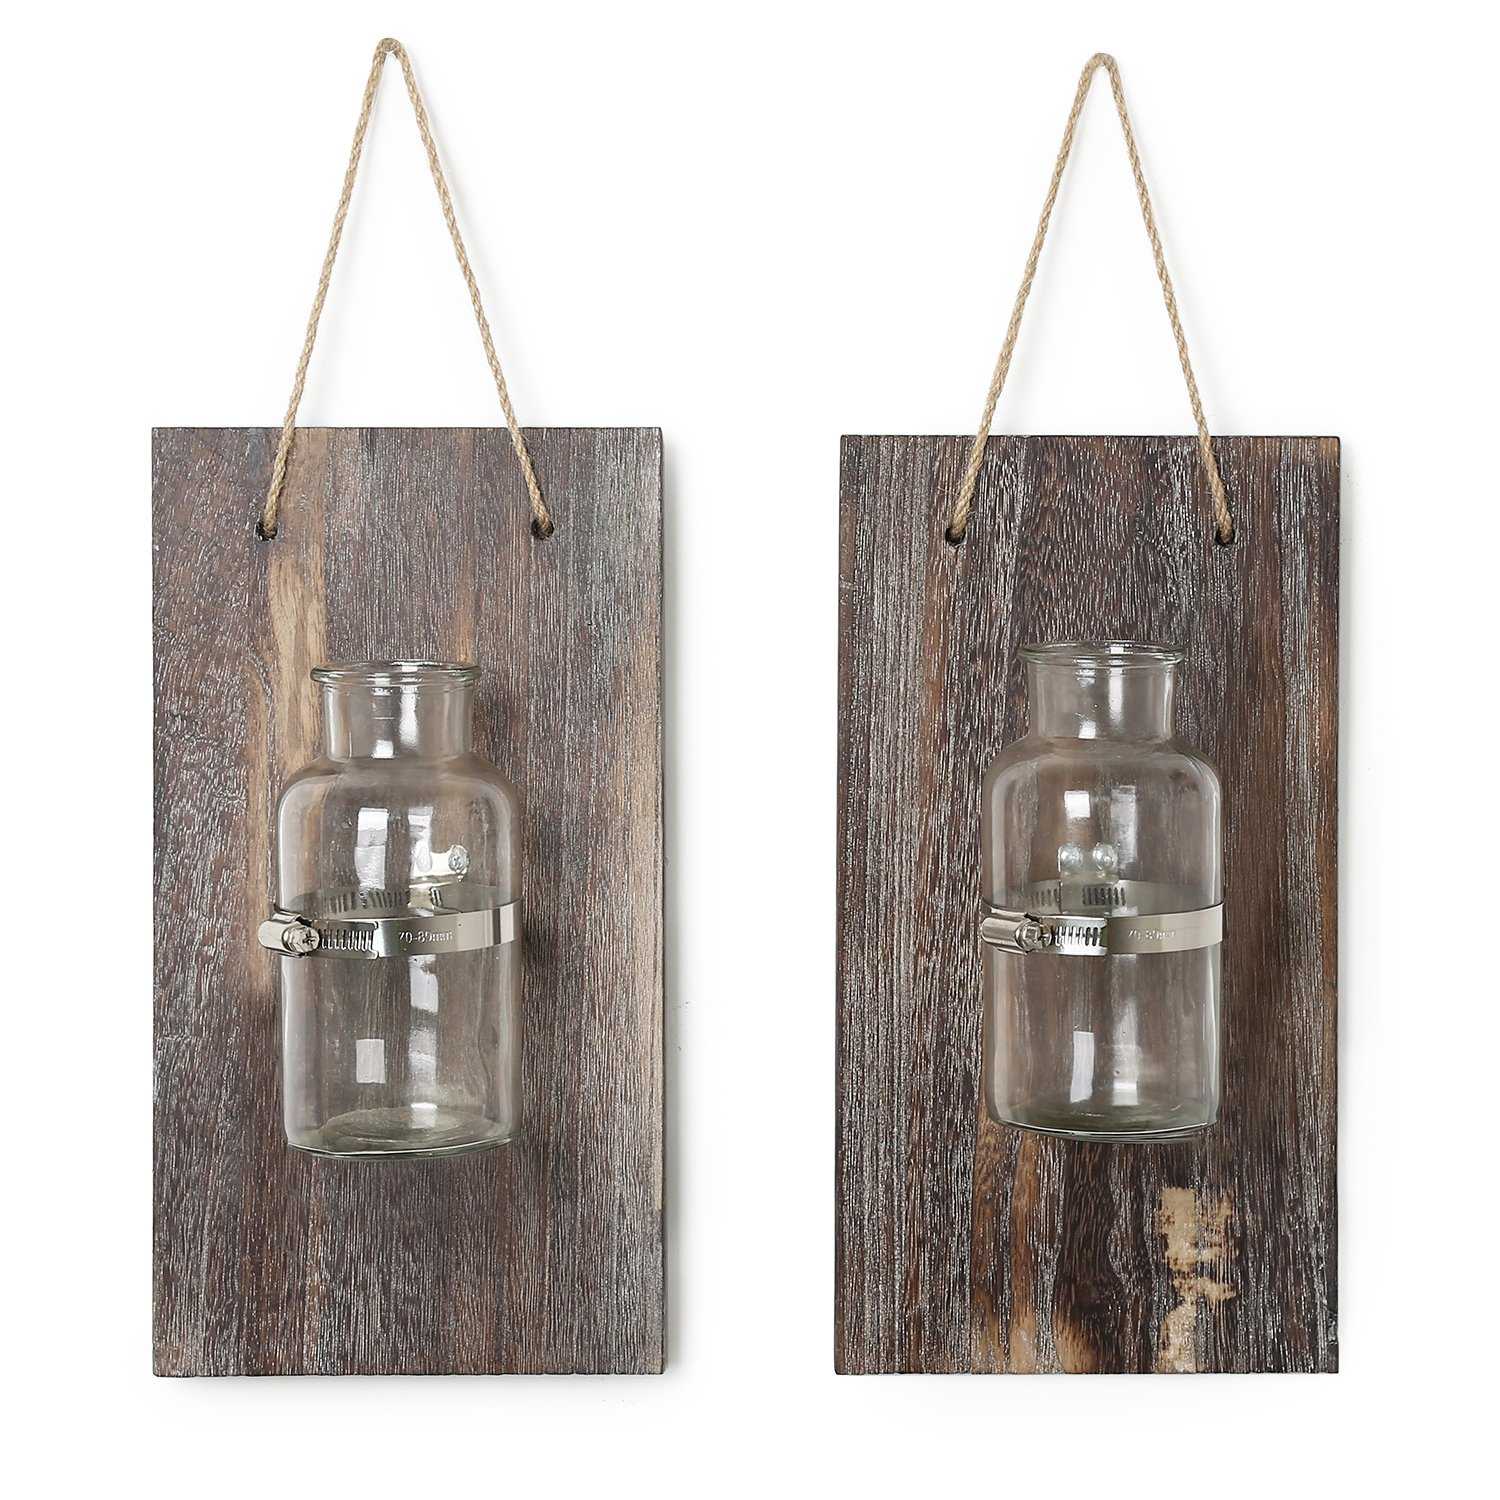 CALIFORNIA CADE ELECTRONIC Mason Jars-Rustic Wall Decor-Home Decor-Vintage Decorative Wall Sconces for Artificial Plant or Anything (2, 12.8X6.8)